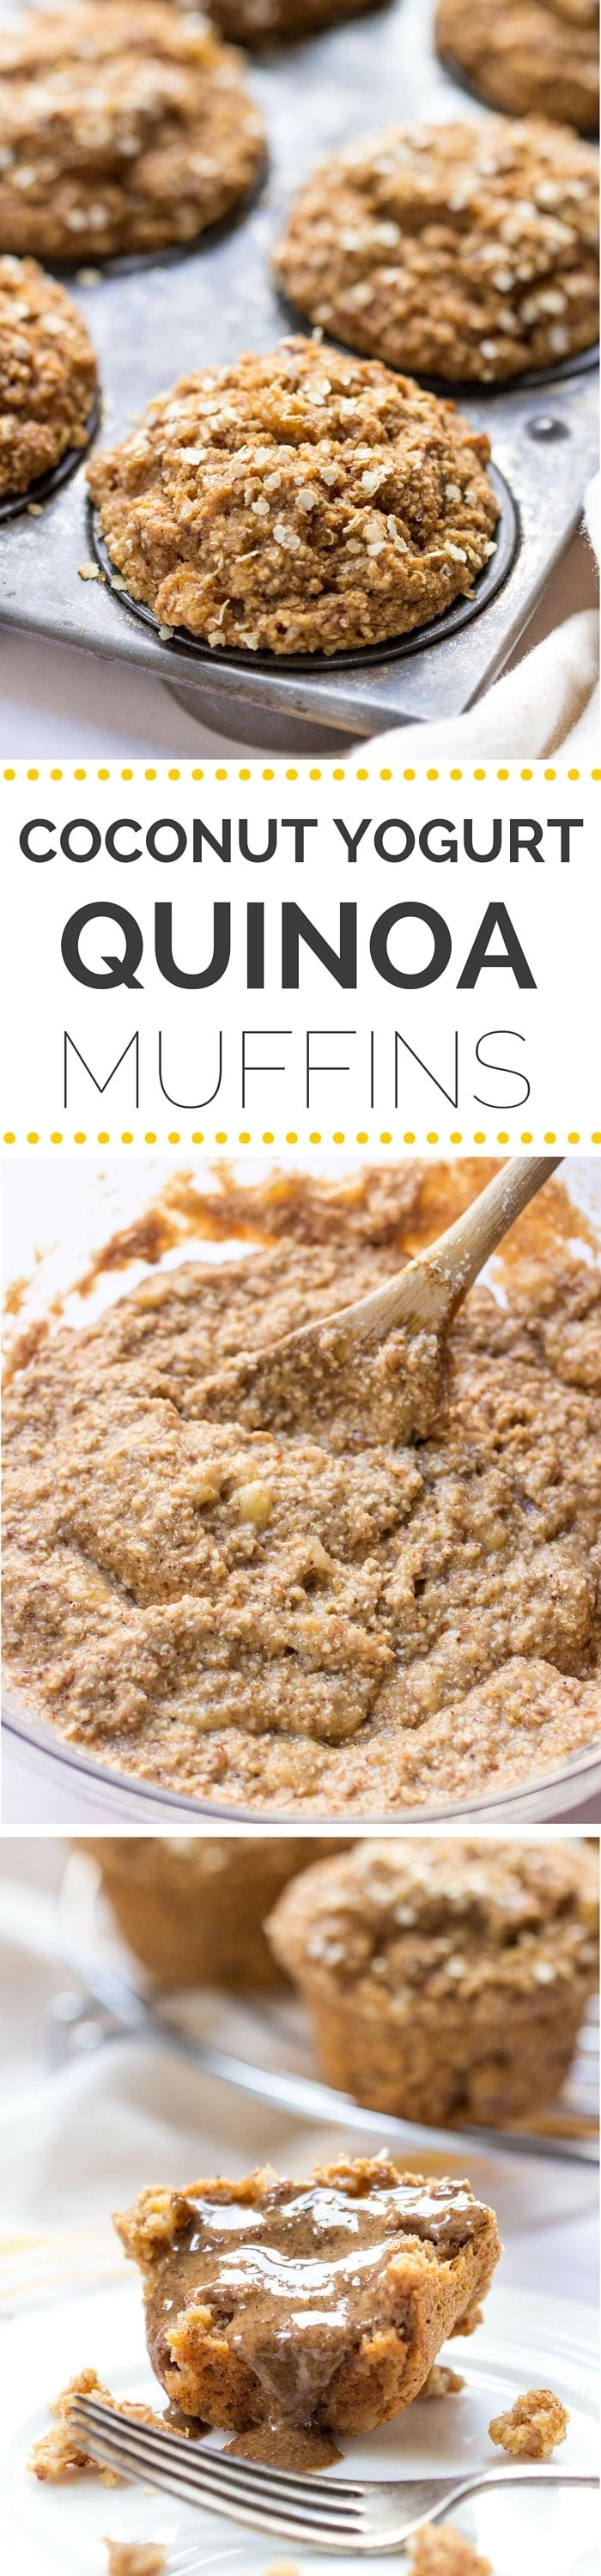 Try these SKINNY quinoa muffins for breakfast | healthy recipe ideas @xhealthyrecipex |